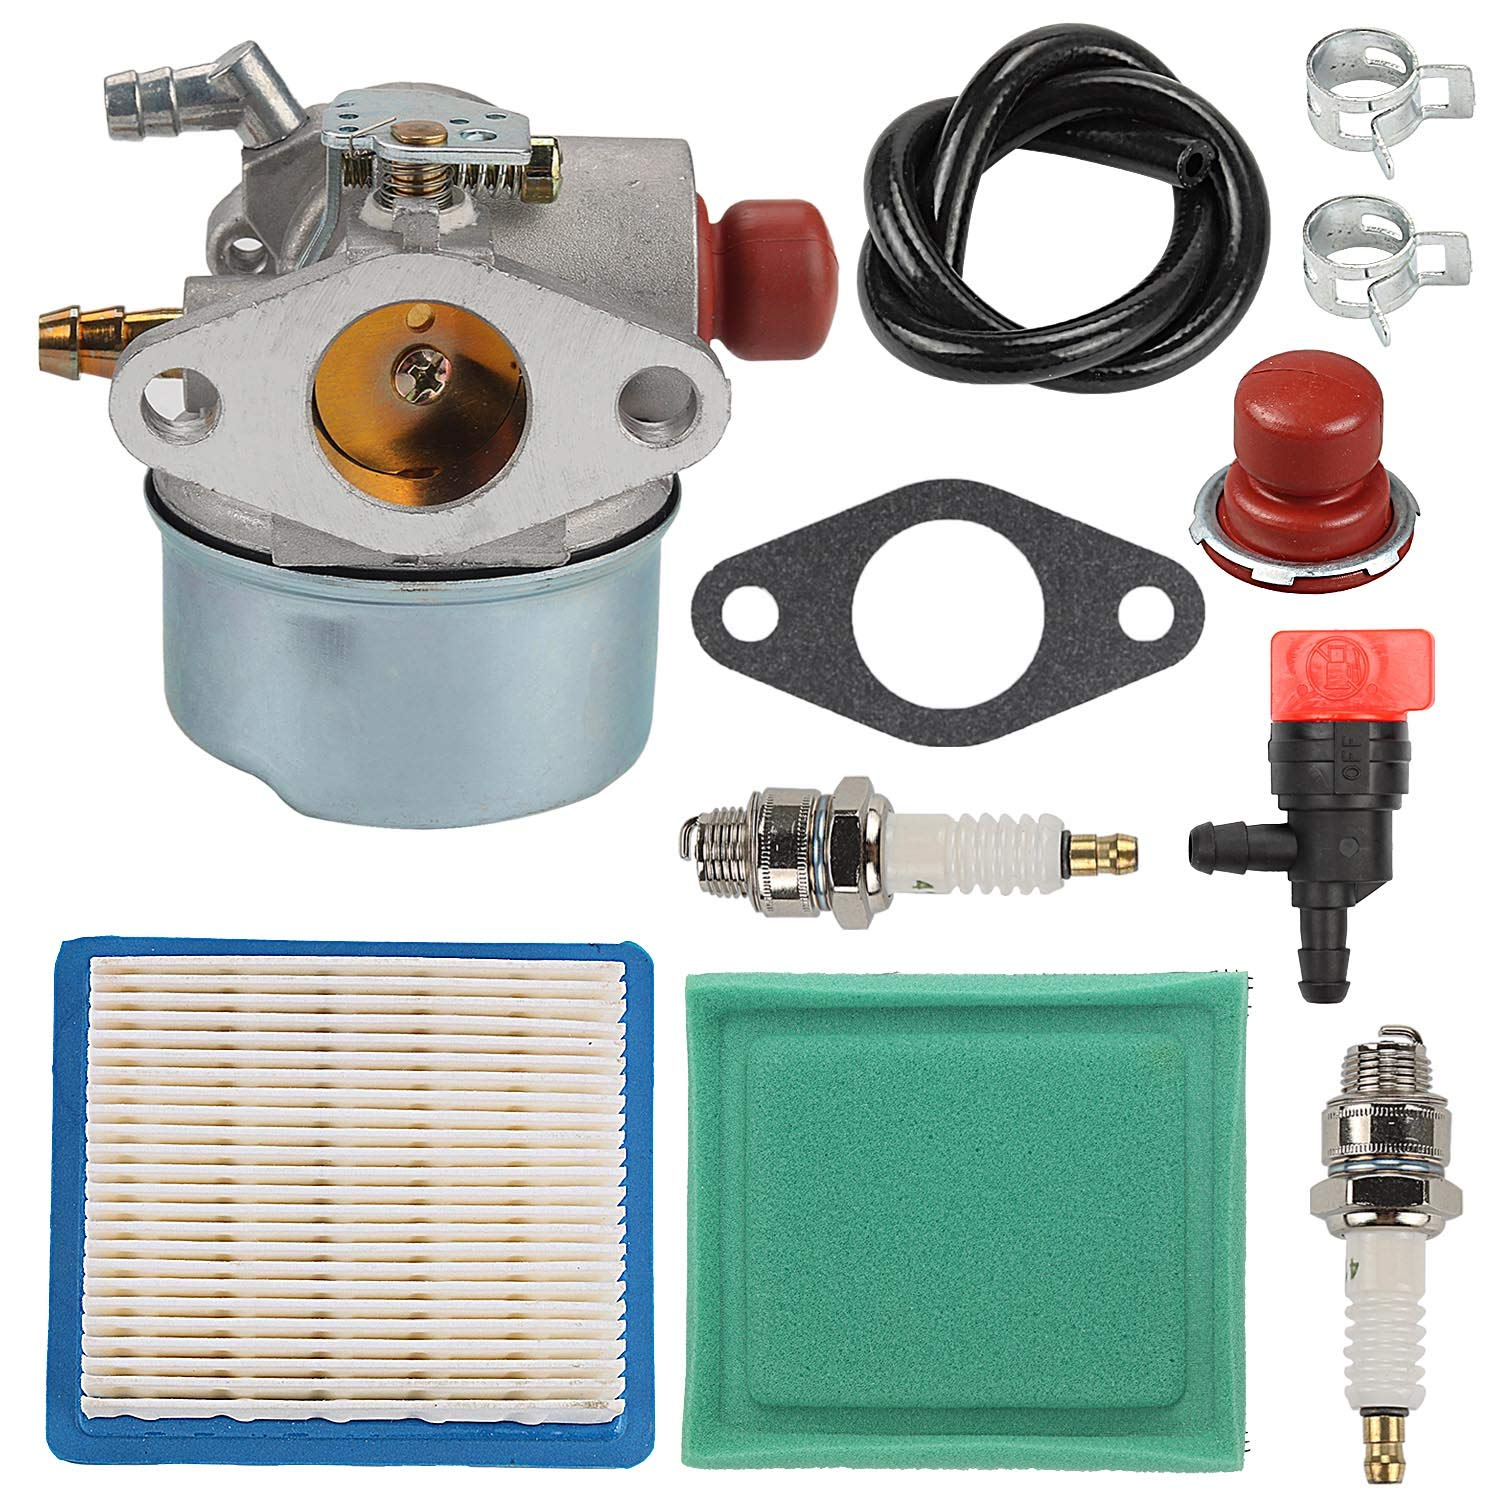 Wellsking 640004 640014 Carburetor for Tecumseh OHH45 OHH50 OHH55 OHH60 OHH65 OH195EA OH195XA Engine Snow Thrower Lawn Mower 640025 640117 640017 with Air Filter Tune Up Kit